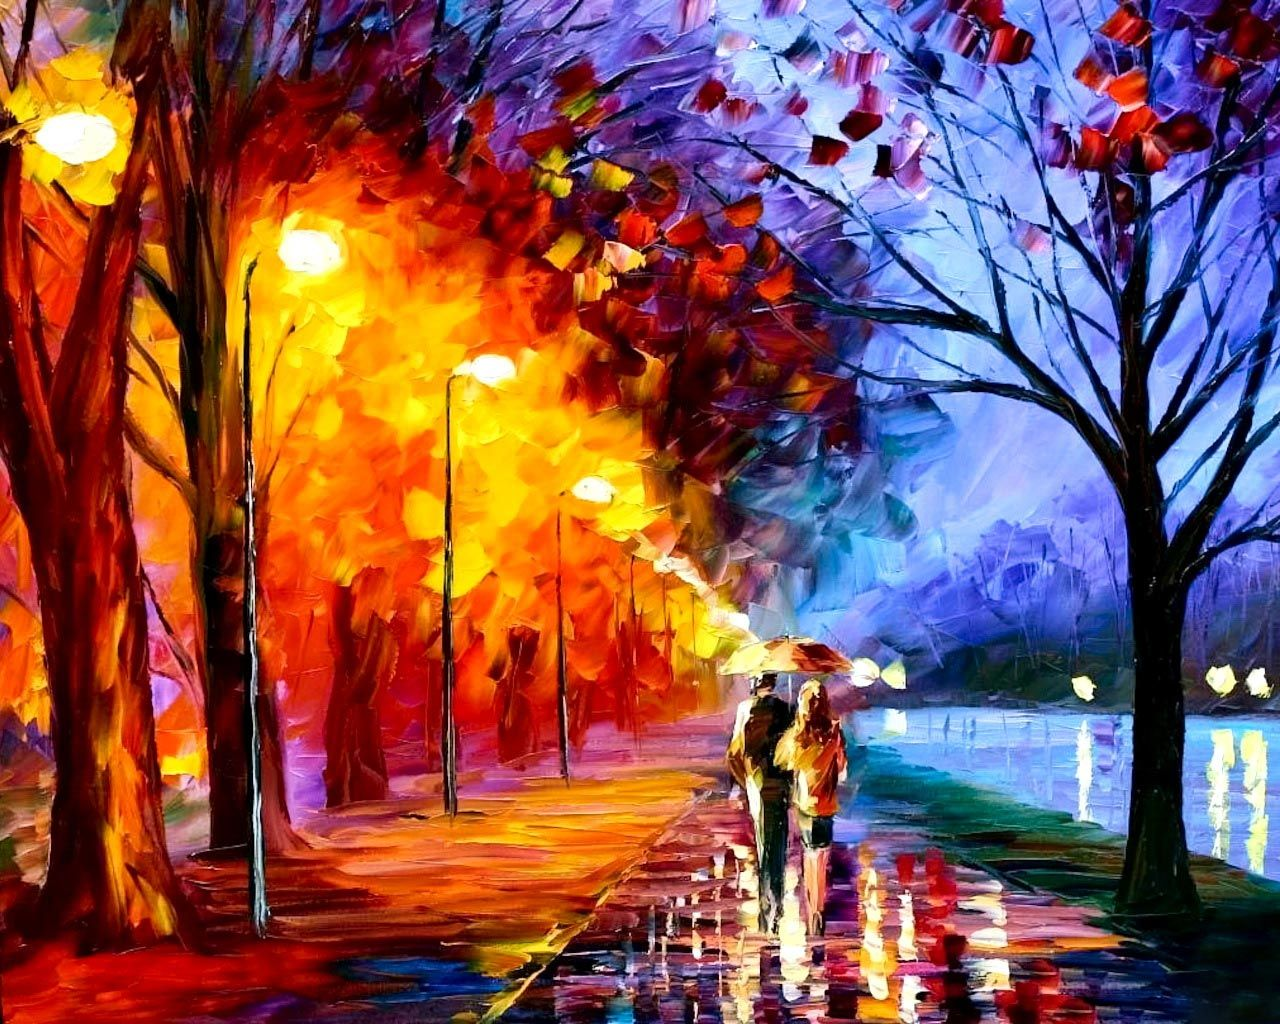 Autumn Oil Painting Wallpaper High Quality Wallpapers Wallpaper